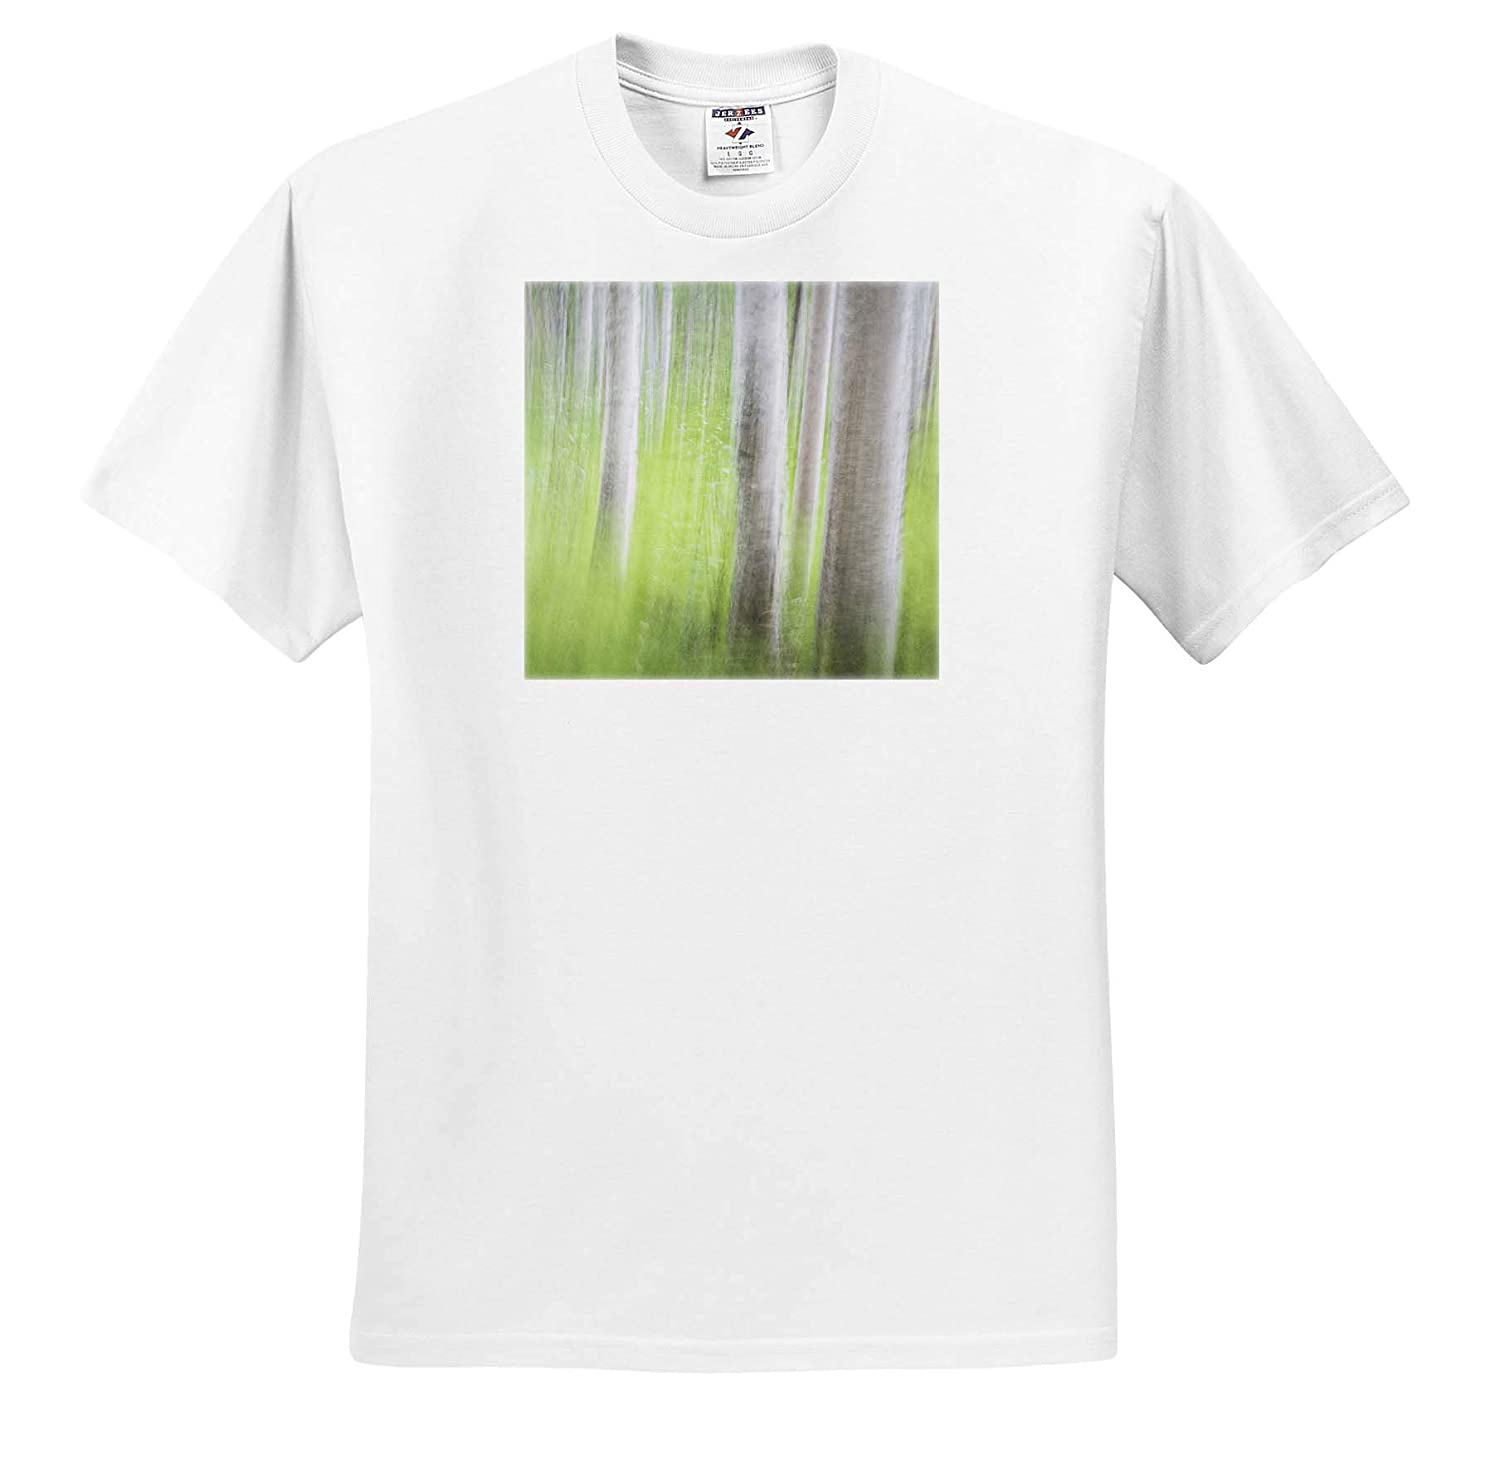 Alaska USA 3dRose Danita Delimont Abstracts - Adult T-Shirt XL Abstract Motion Blur of Birch Trees ts/_314459